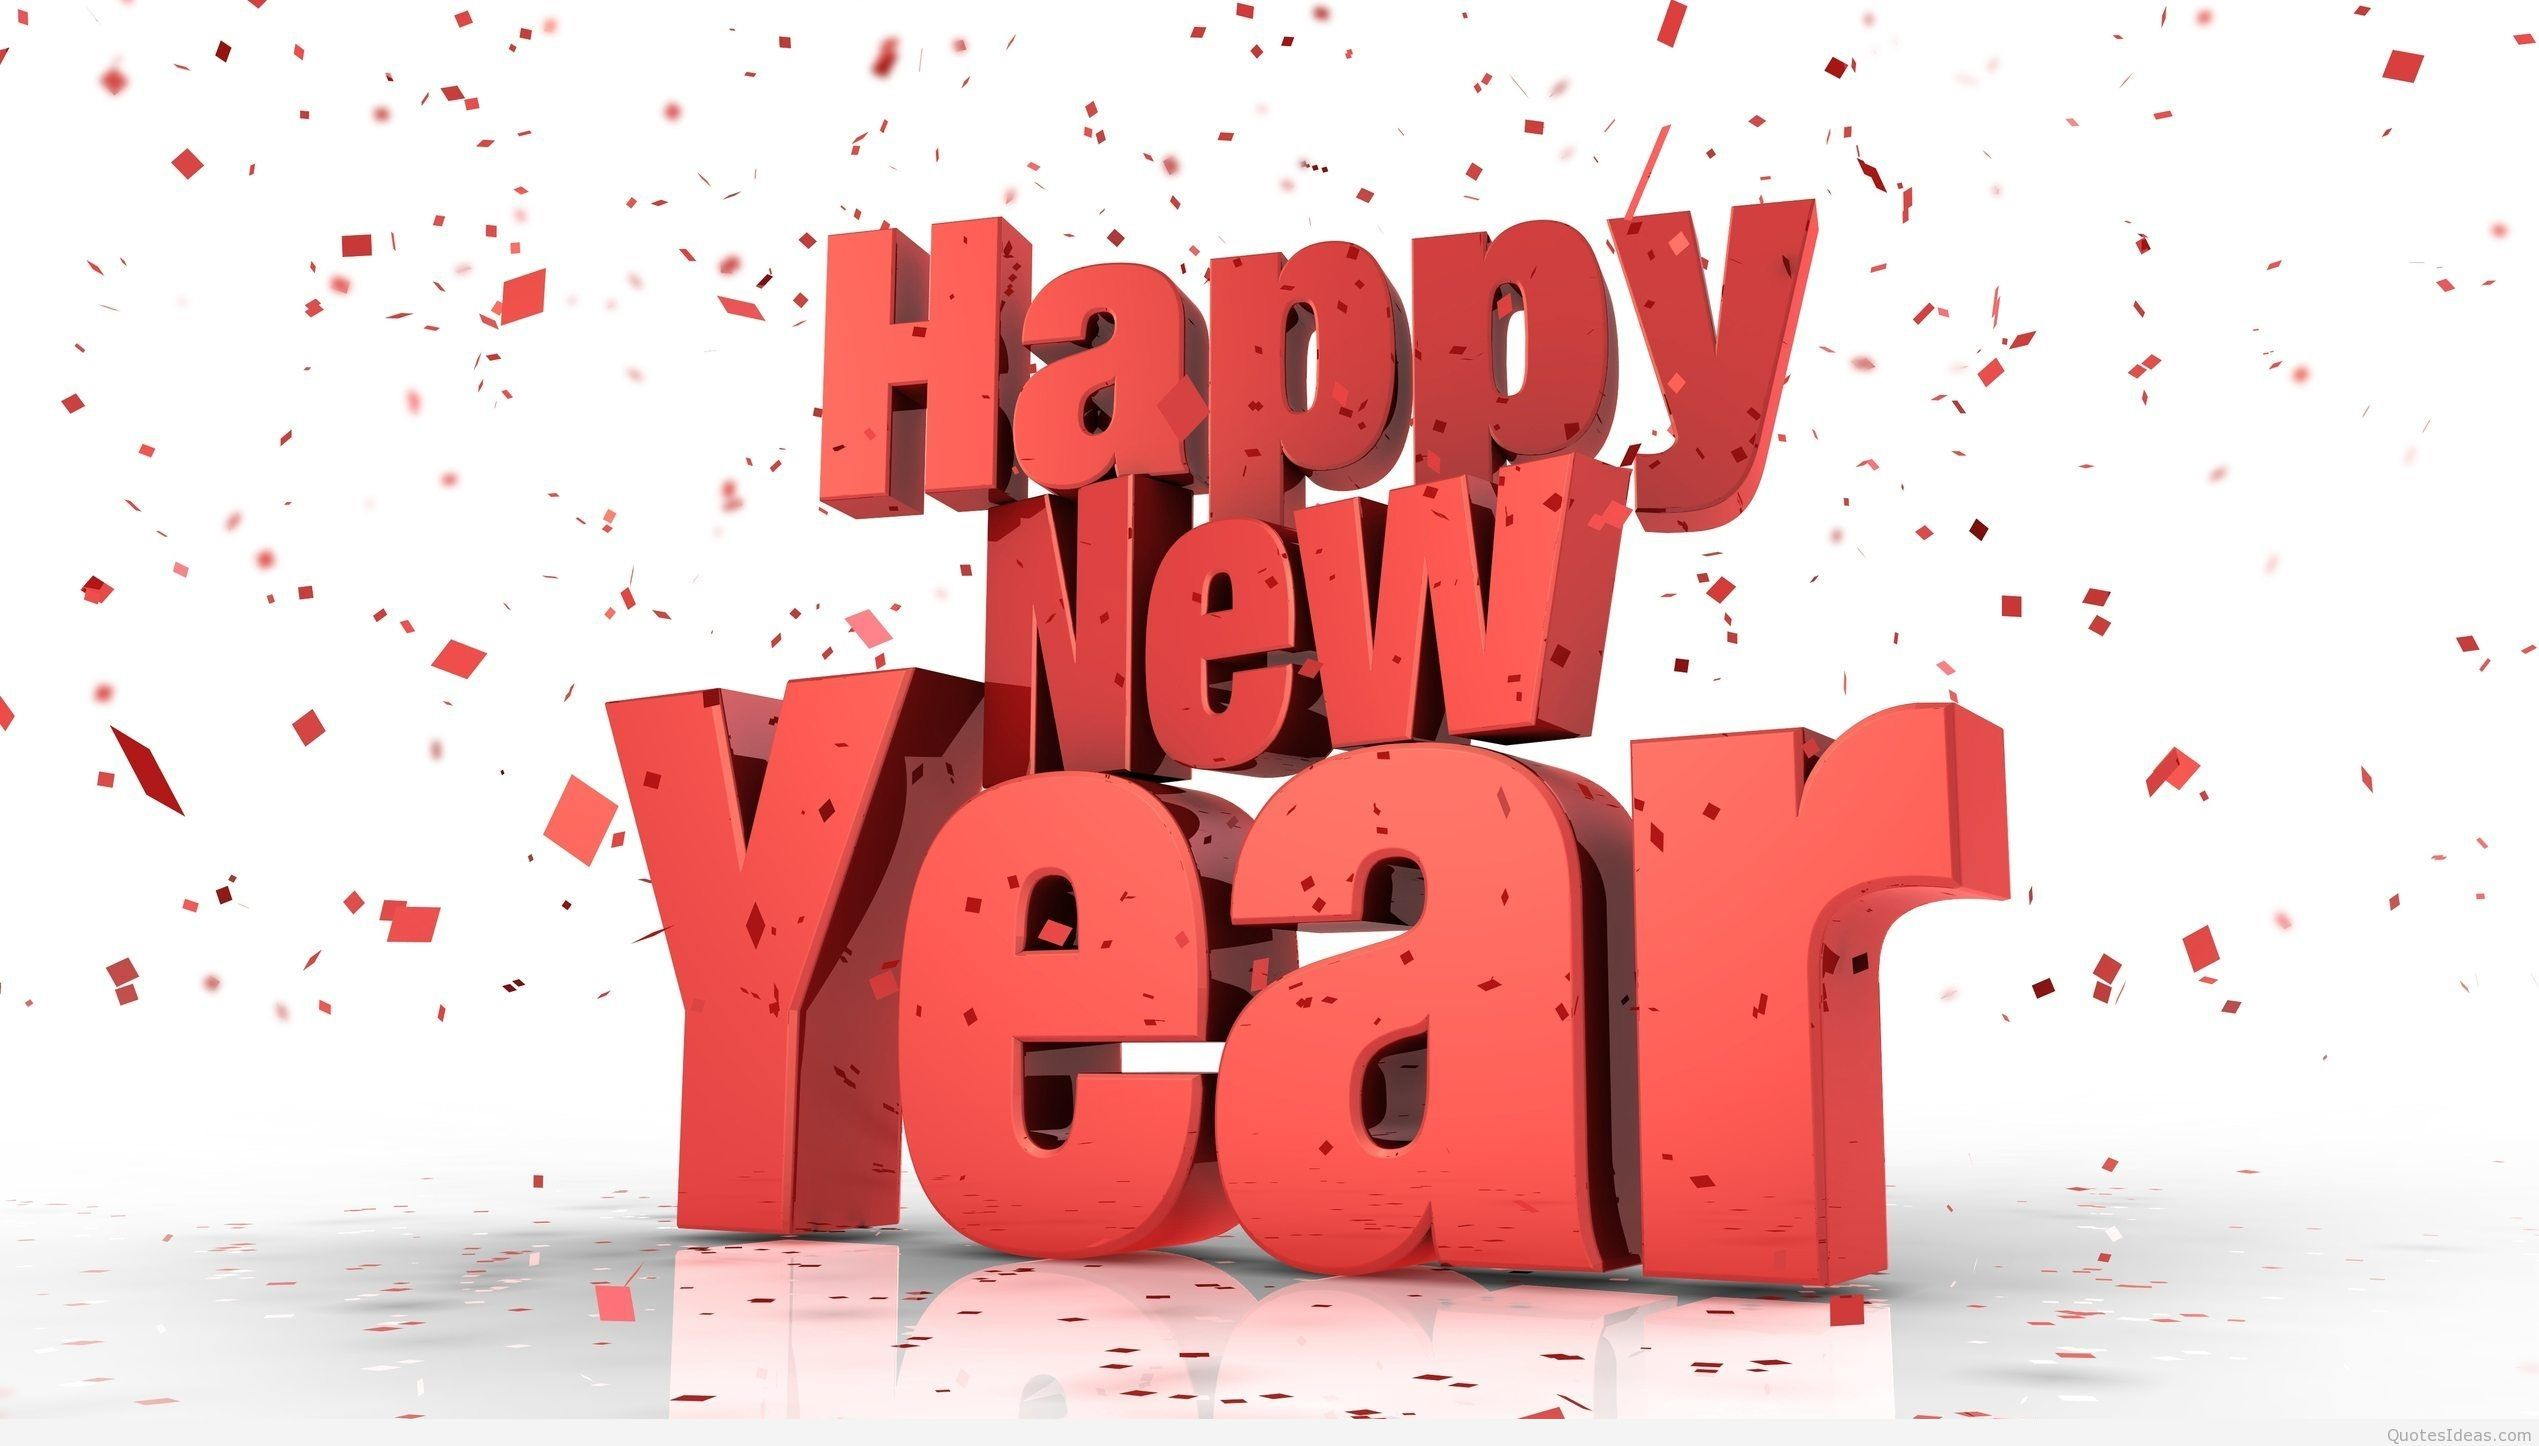 Wallpaper download new year 2015 - Happy New Year 2016 Hd Images Wallpapers Free Download